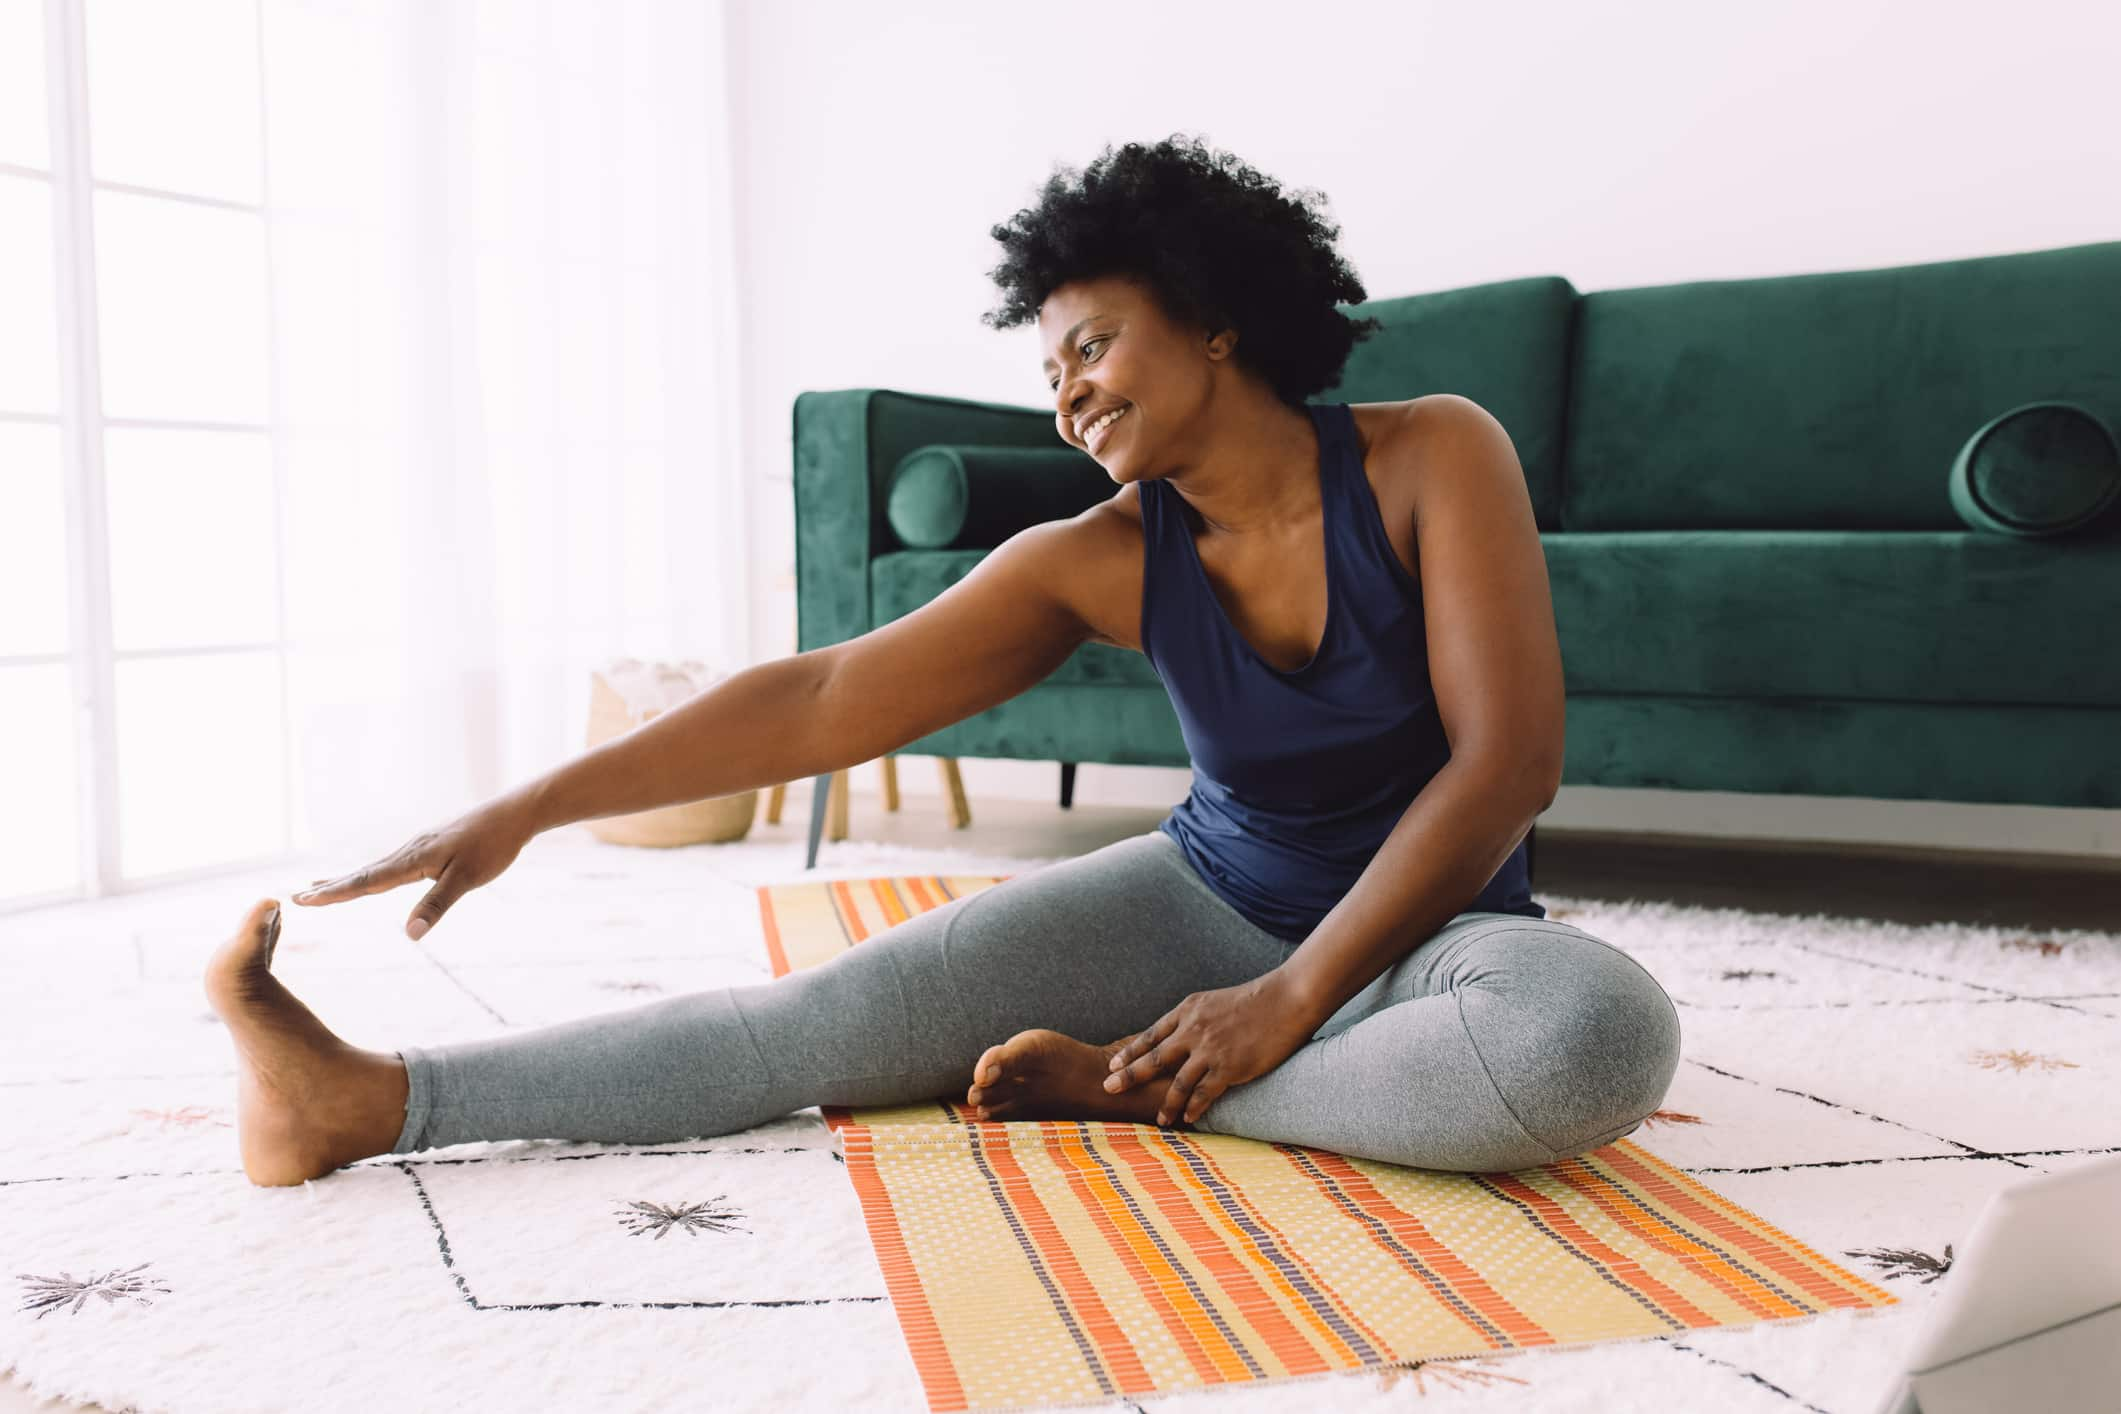 African-American woman doing a leg stretch on a yoga mat at home